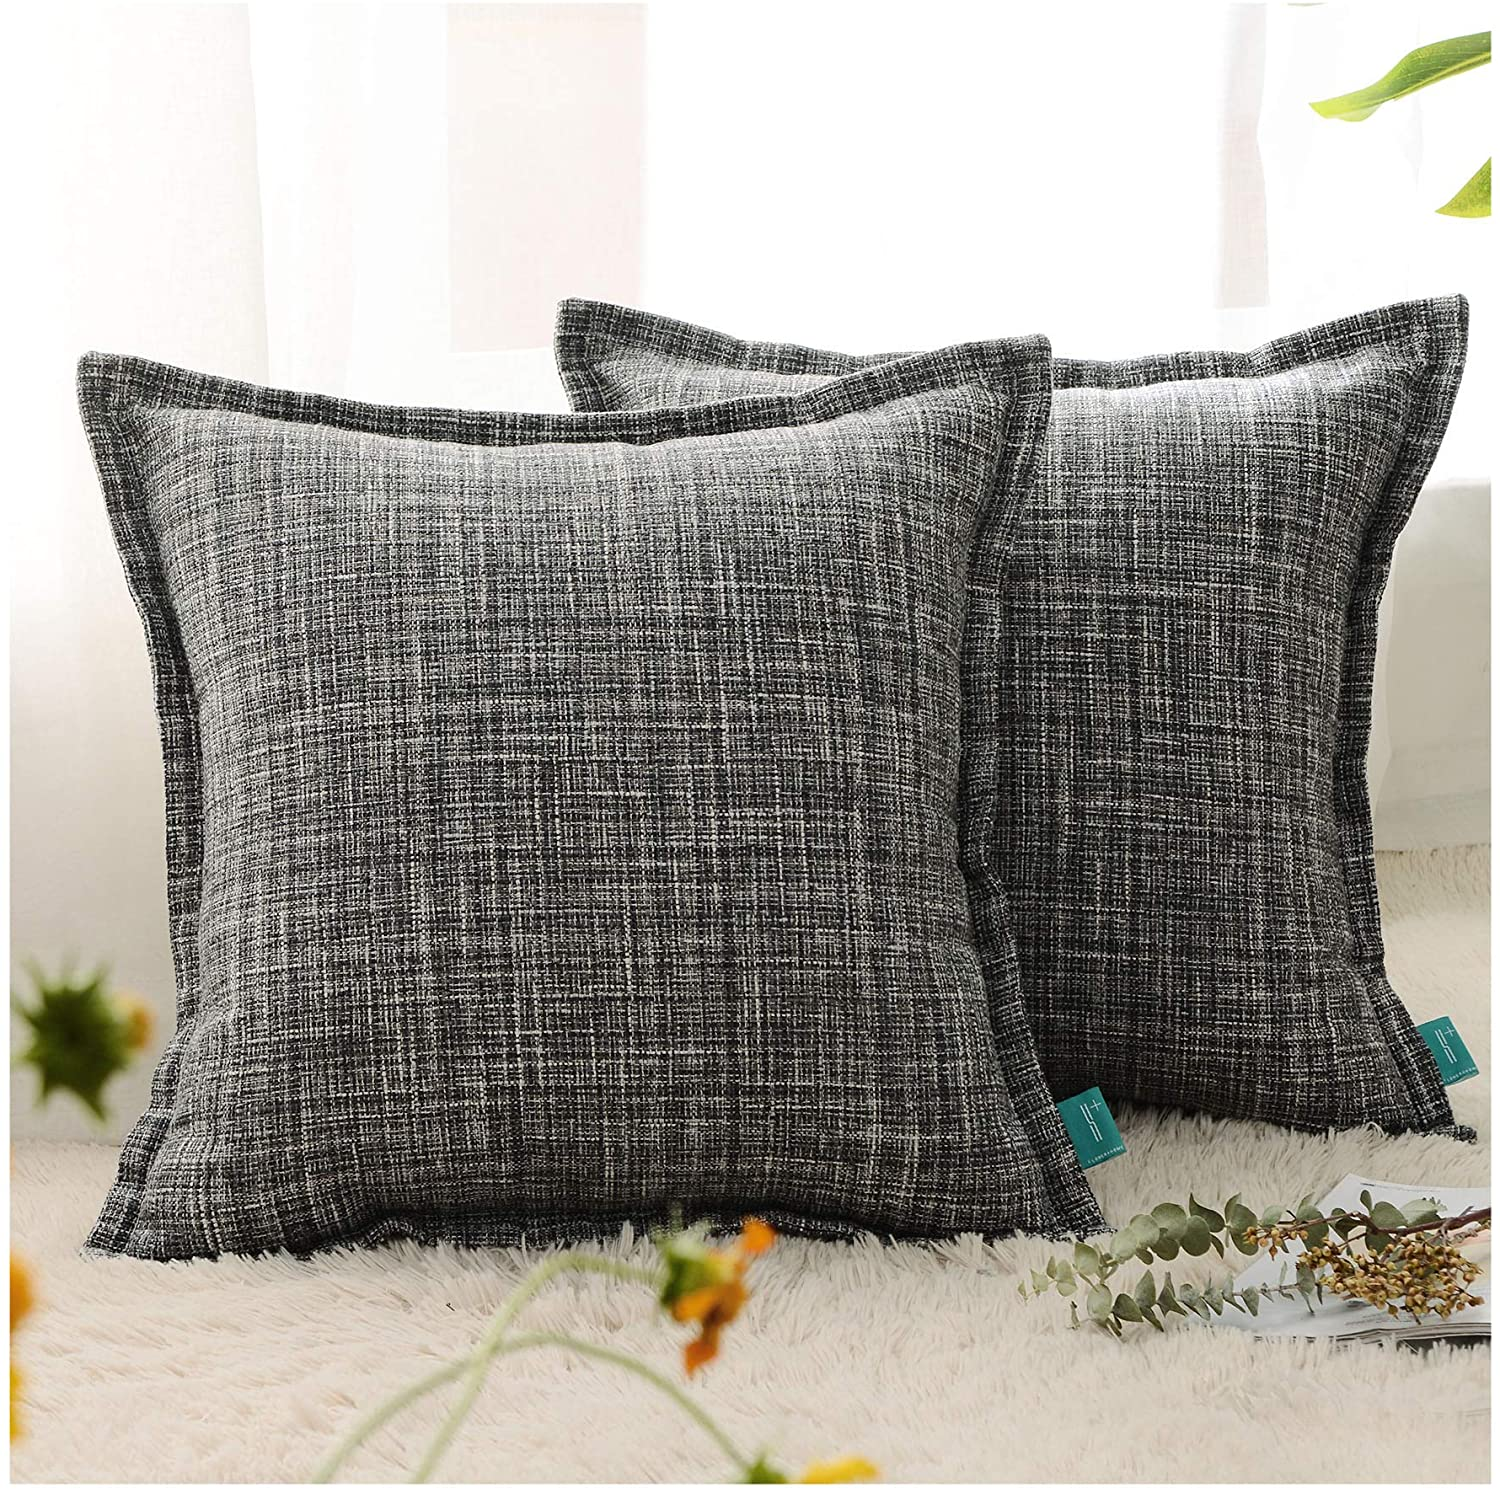 HPUK 16x16 Inch Burlap Linen Look Pillow Cover Modern Farmhouse Pillowcase 2 Pack for Couch, Sofa, Bed, Outdoor, Grey